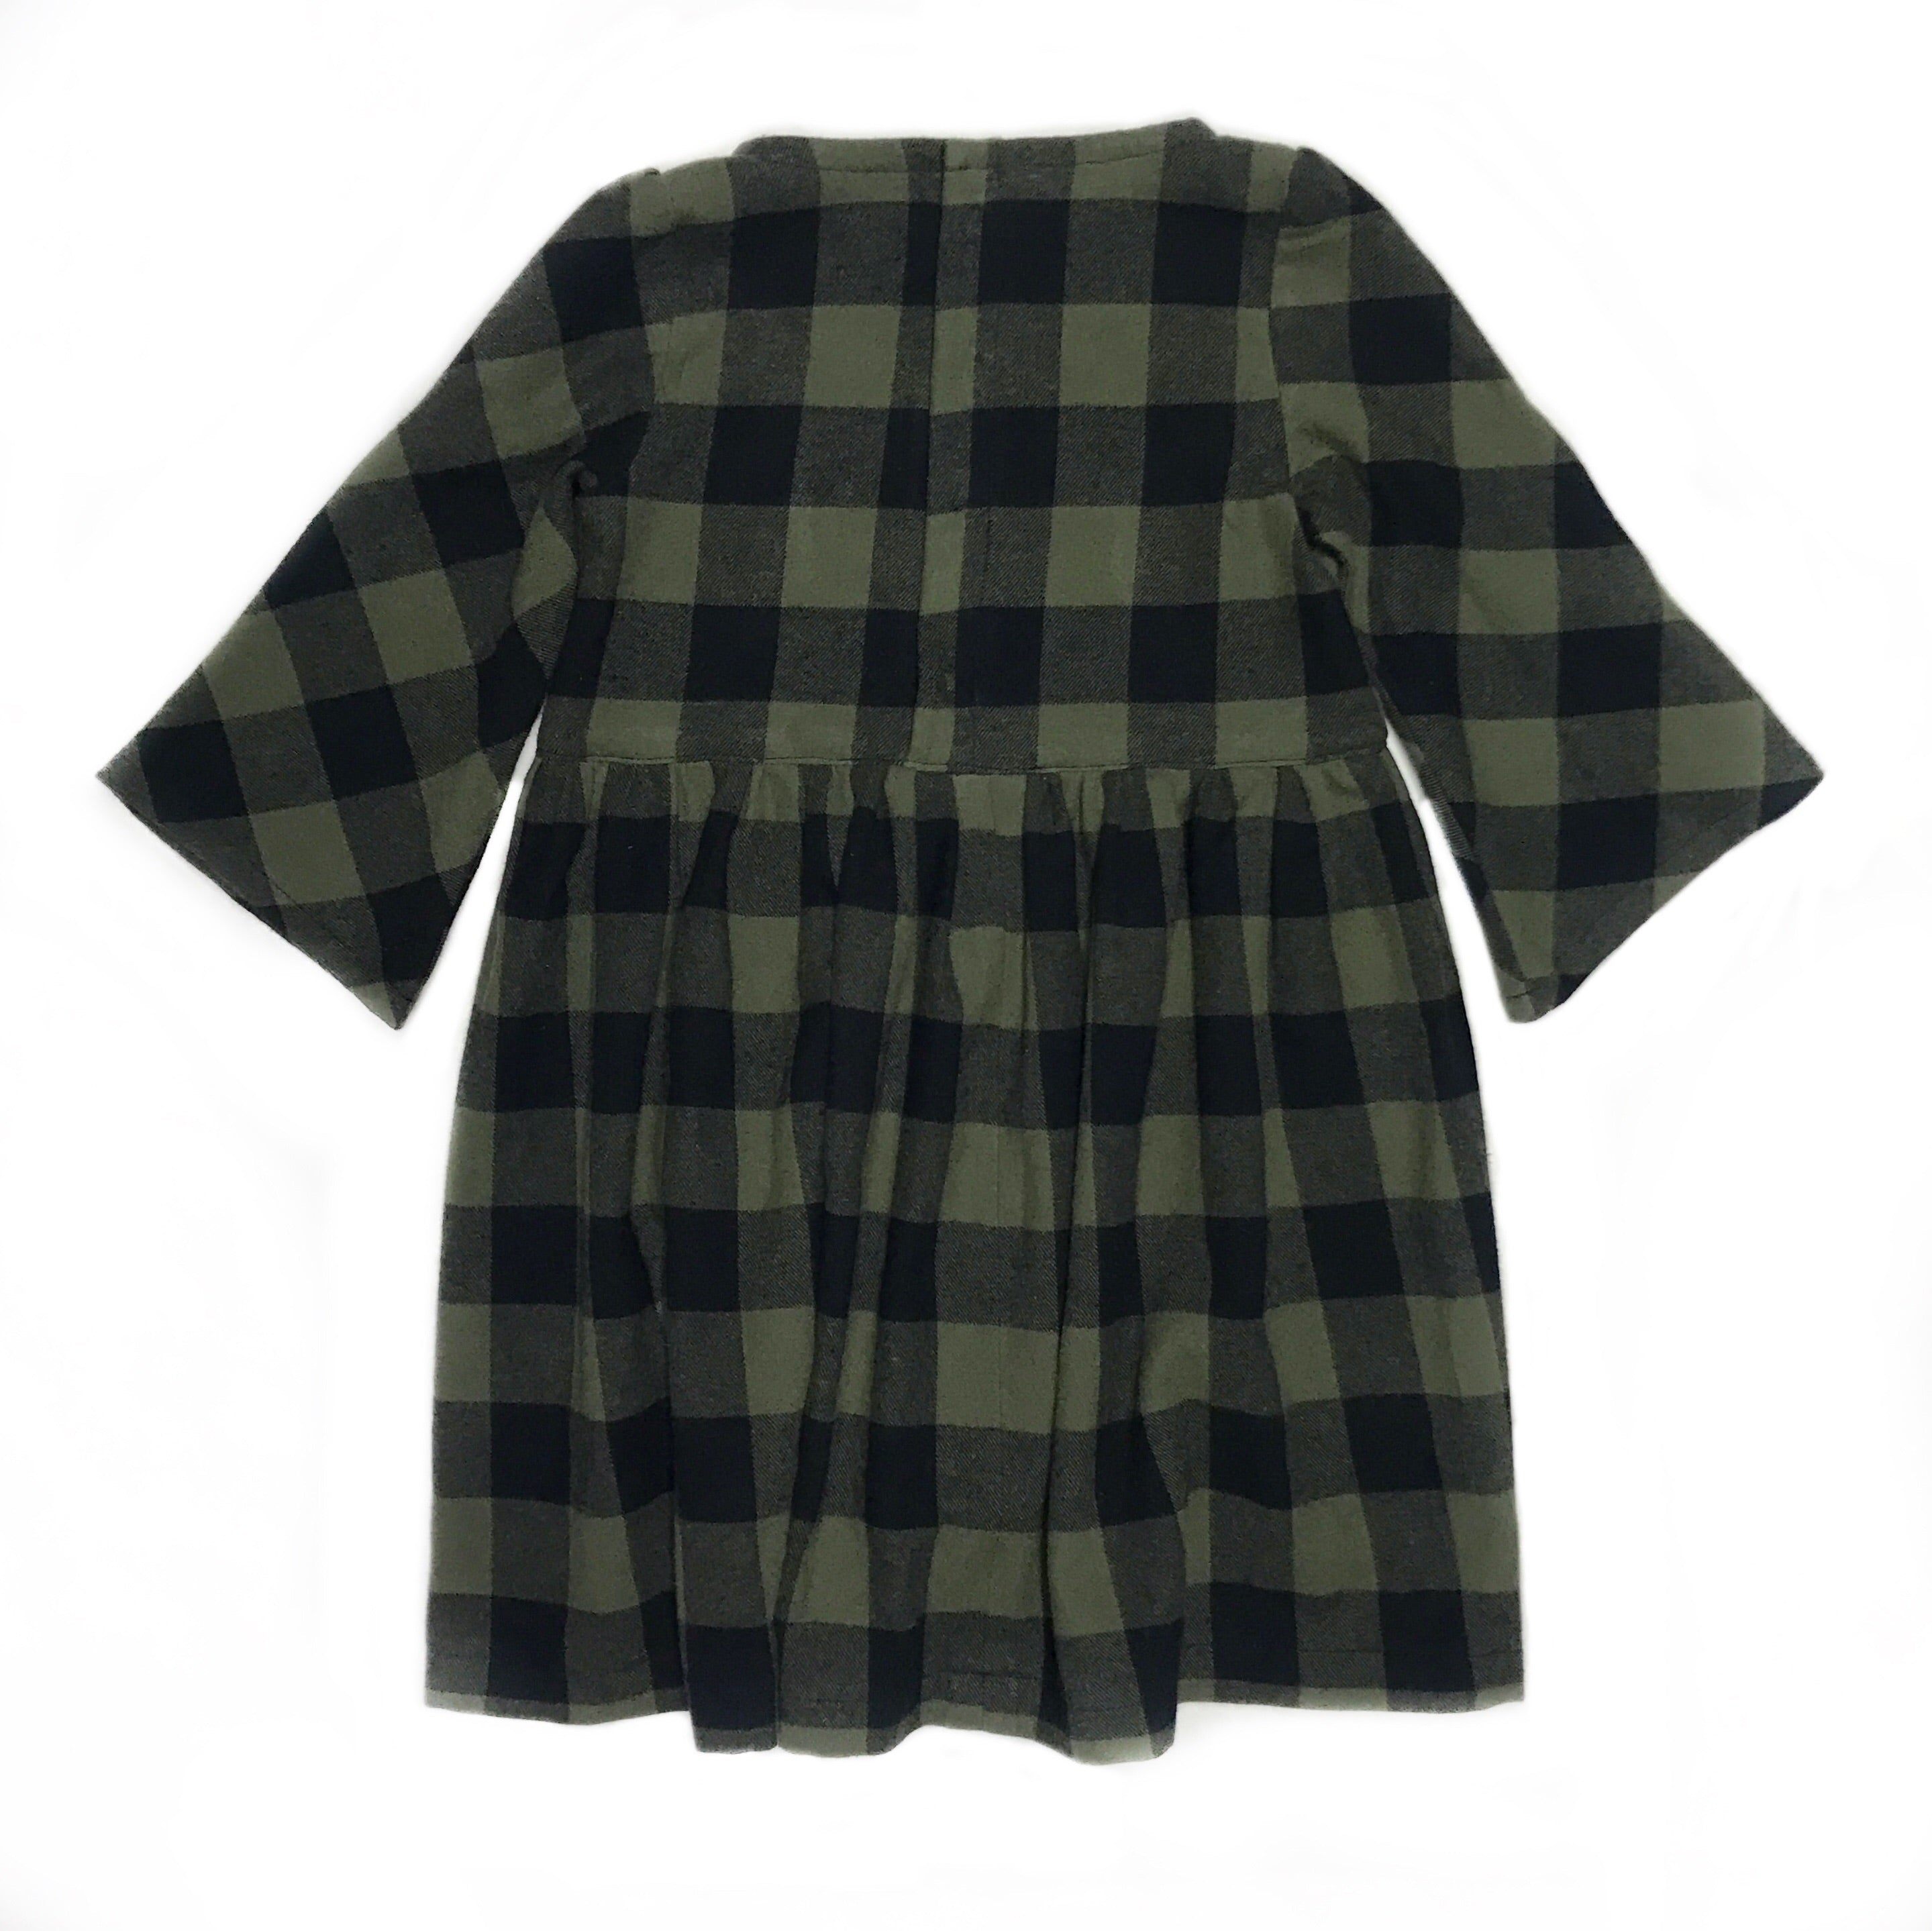 Girls Check Flannel Remi Dress: Size 6x